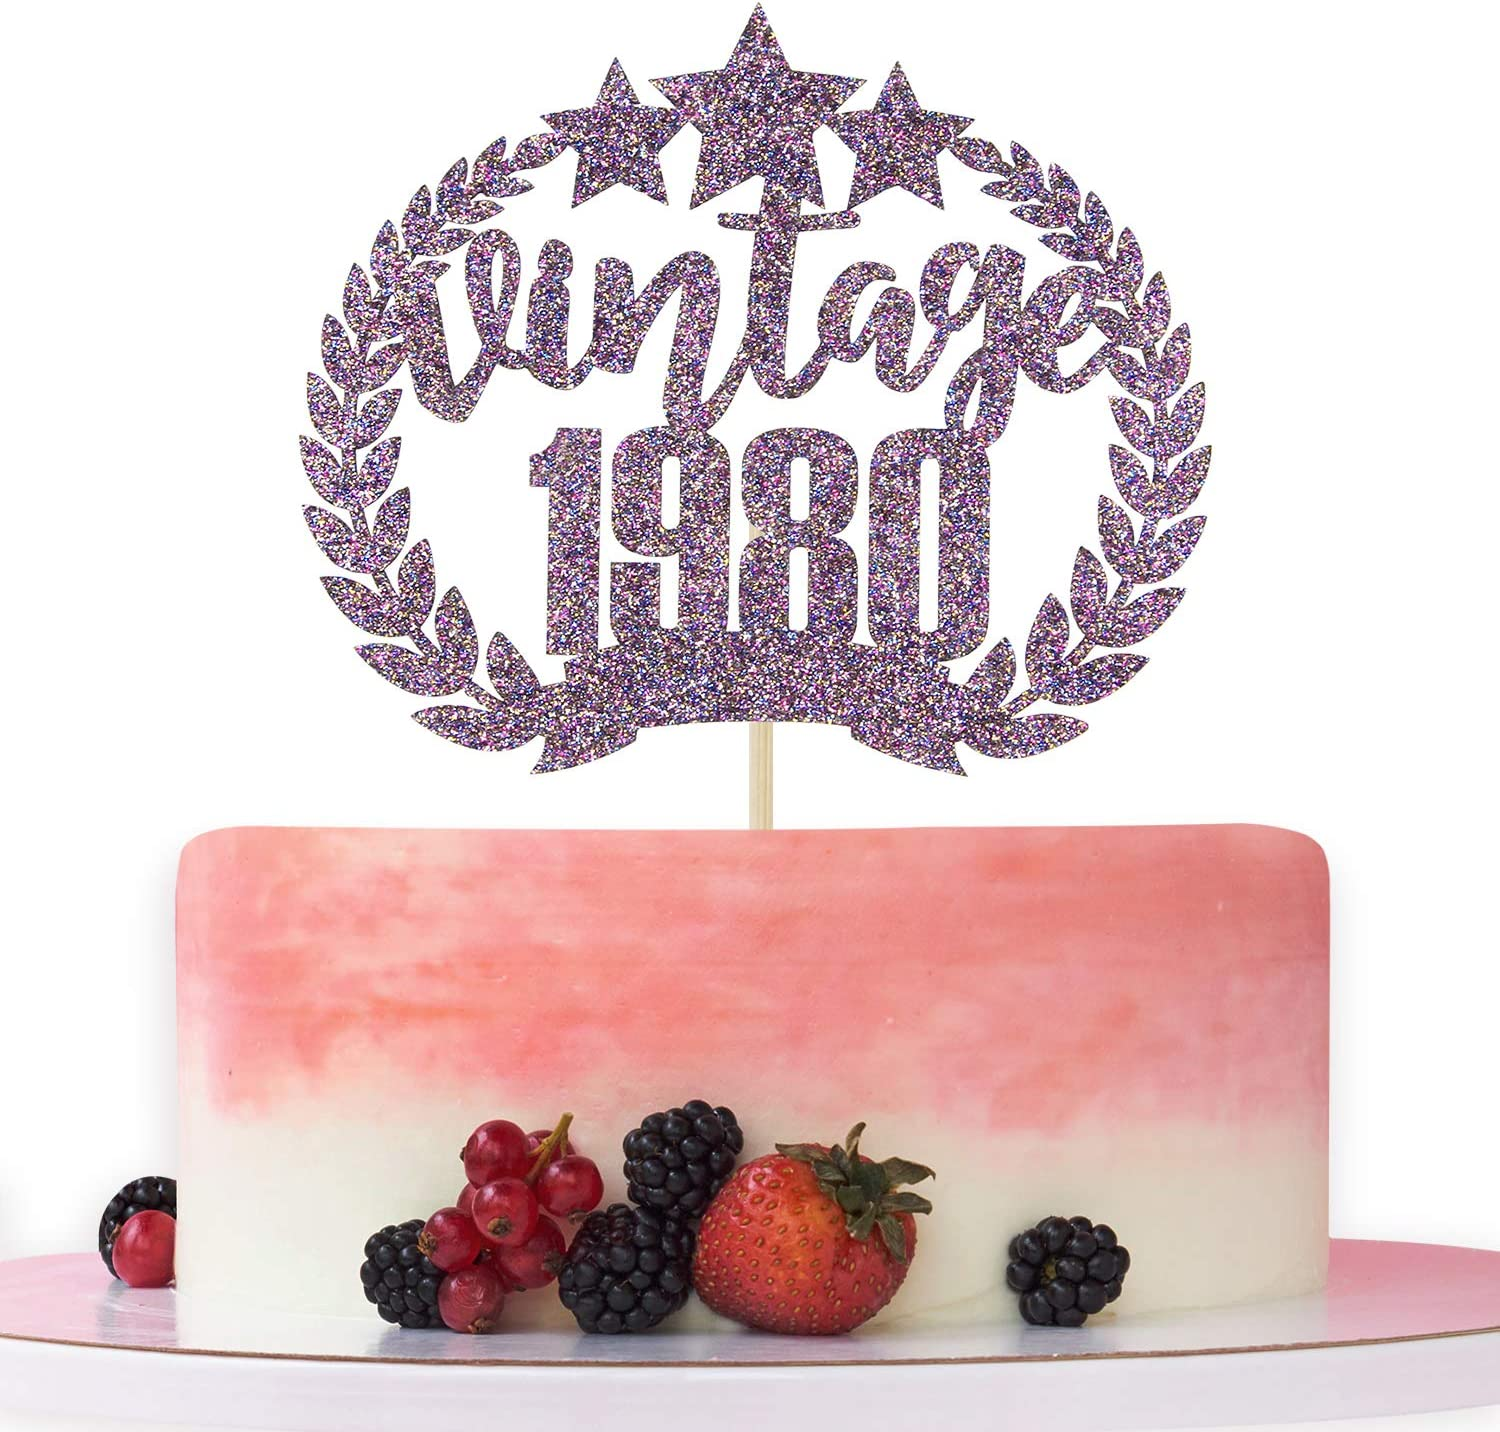 Purple Glitter Vintage 1980 Cake Topper, Happy 40th Birthday Cake Decor - Cheers to 40 Years - 40th Anniversary Party Decoration Supplies